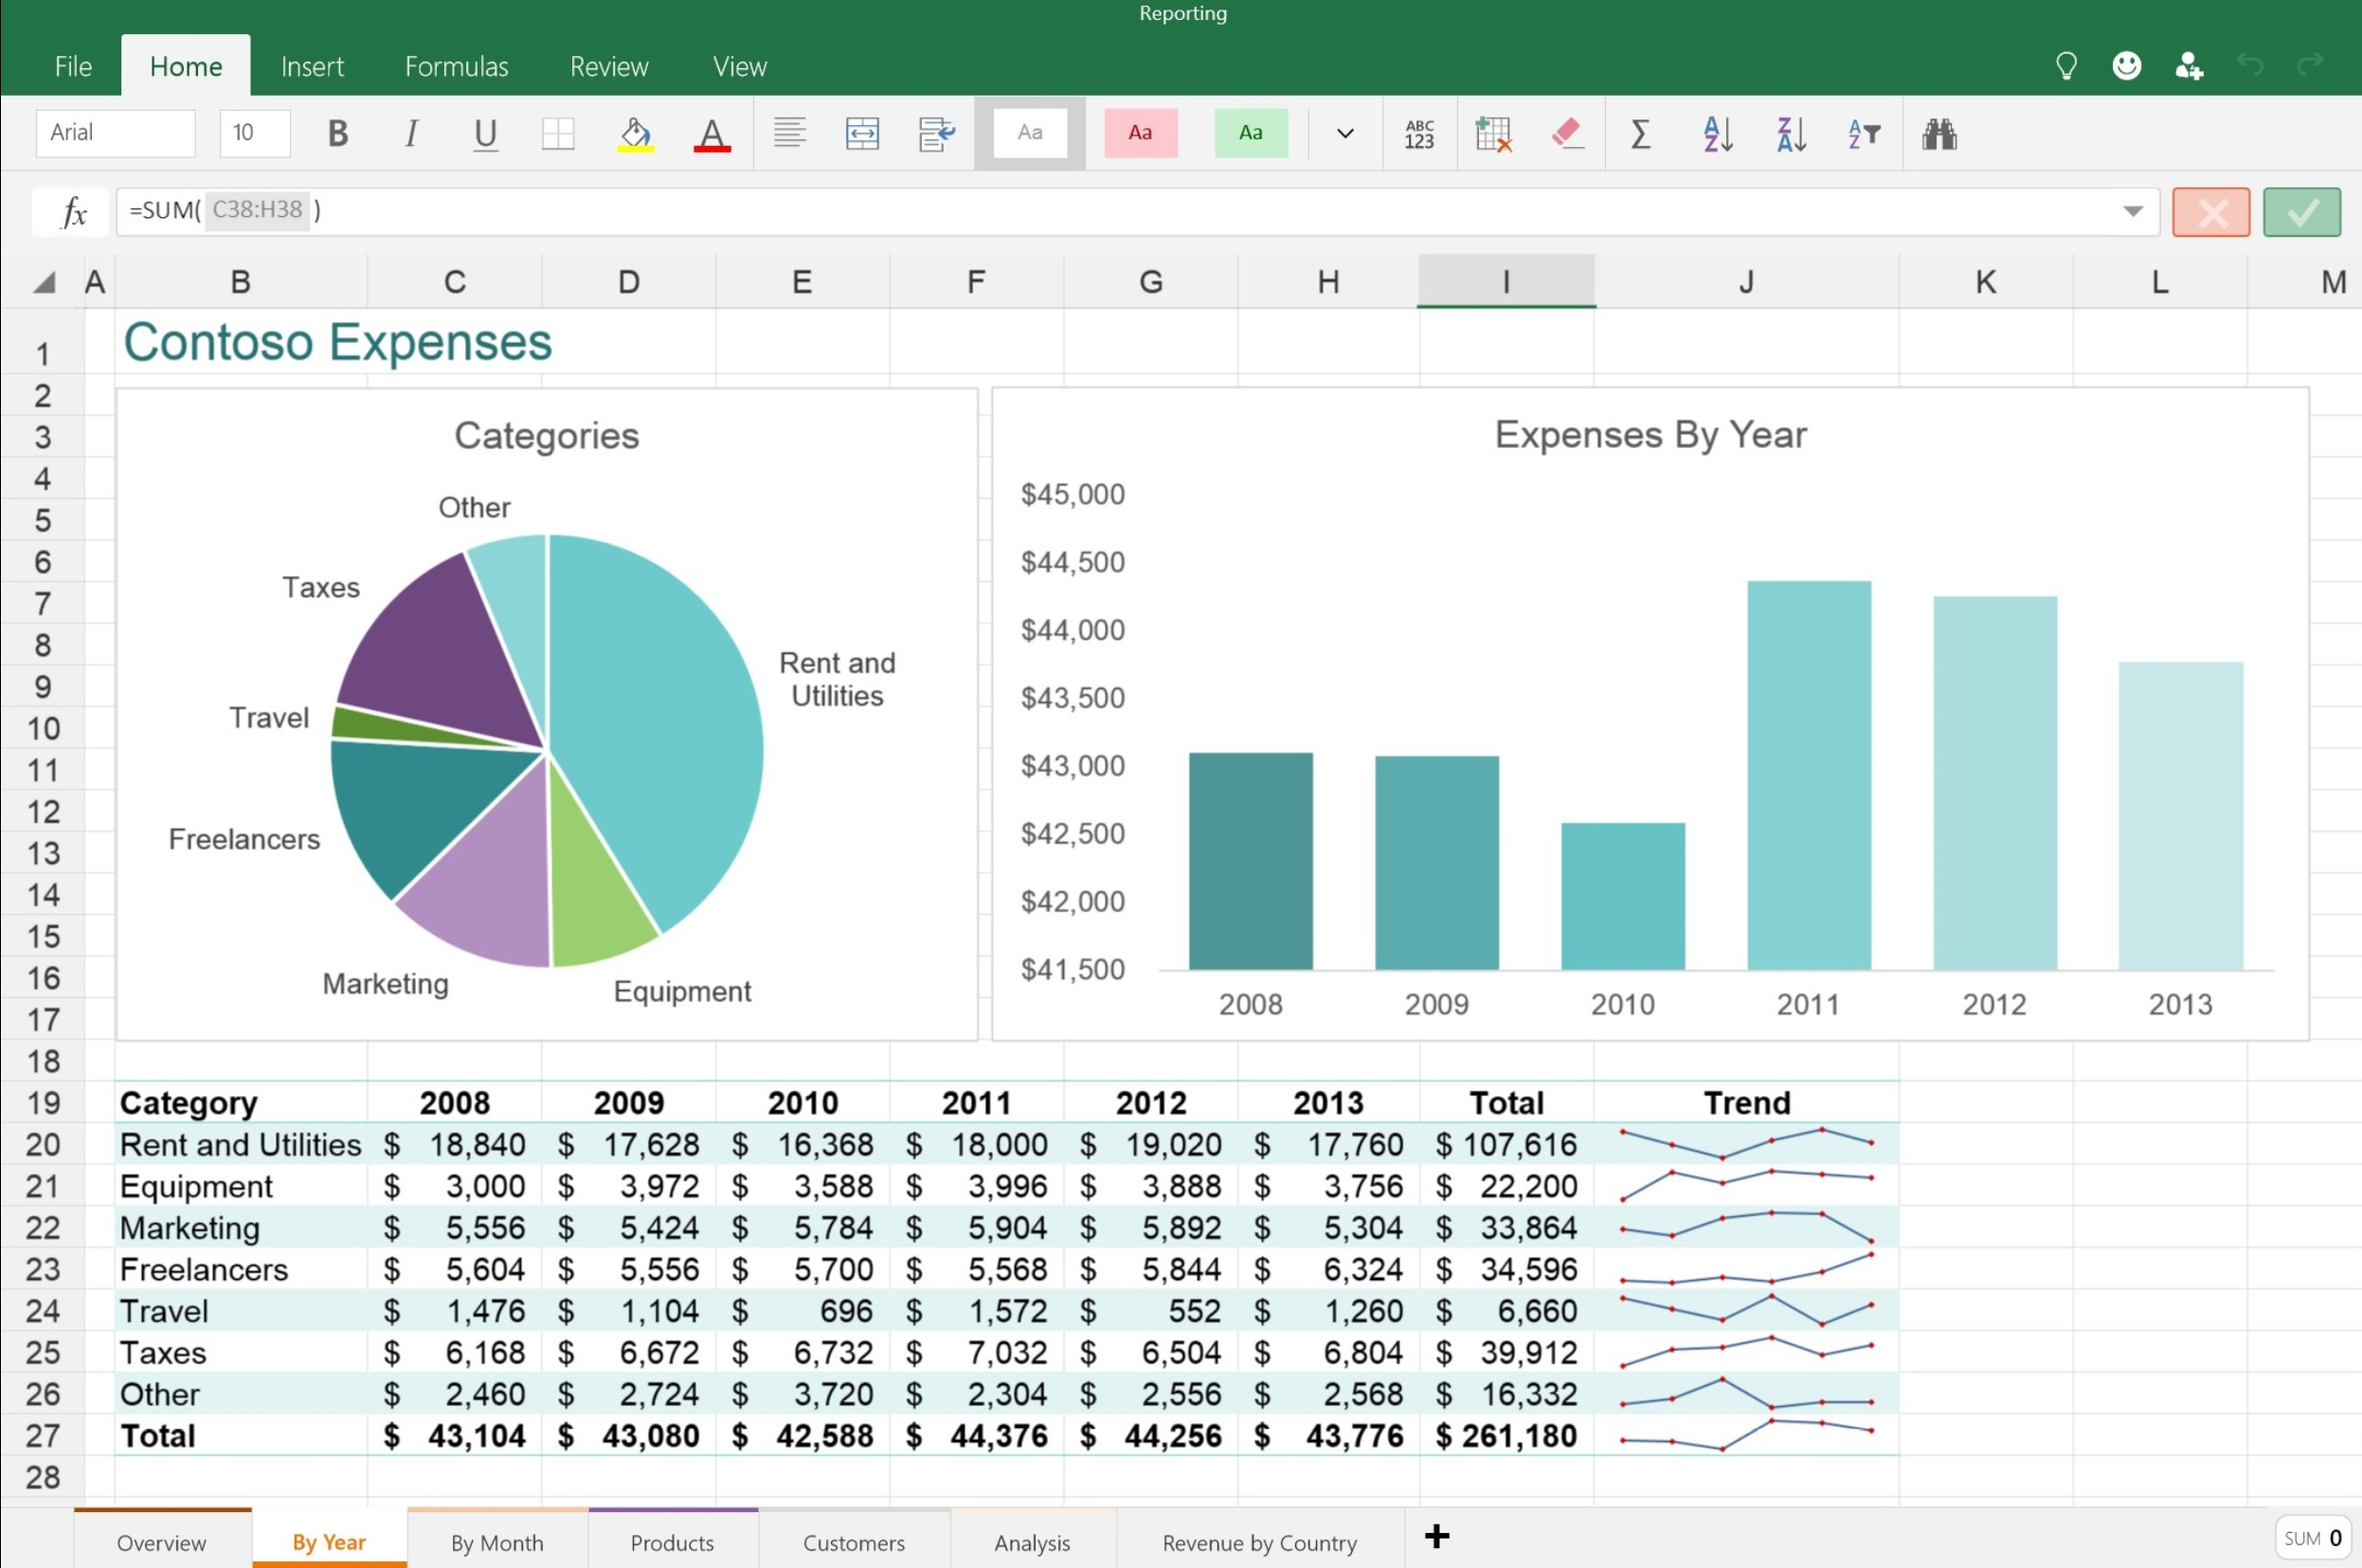 Ediblewildsus  Surprising Features Available In The New Word Excel And Powerpoint Apps For  With Great Excel Touch App  With Amazing While In Excel Vba Also Wheel Chart Excel In Addition Payroll Tax Calculator Excel And Scatter Plot Chart Excel As Well As How To Make Drop Down List In Excel  Additionally Name Series In Excel From Mspowerusercom With Ediblewildsus  Great Features Available In The New Word Excel And Powerpoint Apps For  With Amazing Excel Touch App  And Surprising While In Excel Vba Also Wheel Chart Excel In Addition Payroll Tax Calculator Excel From Mspowerusercom